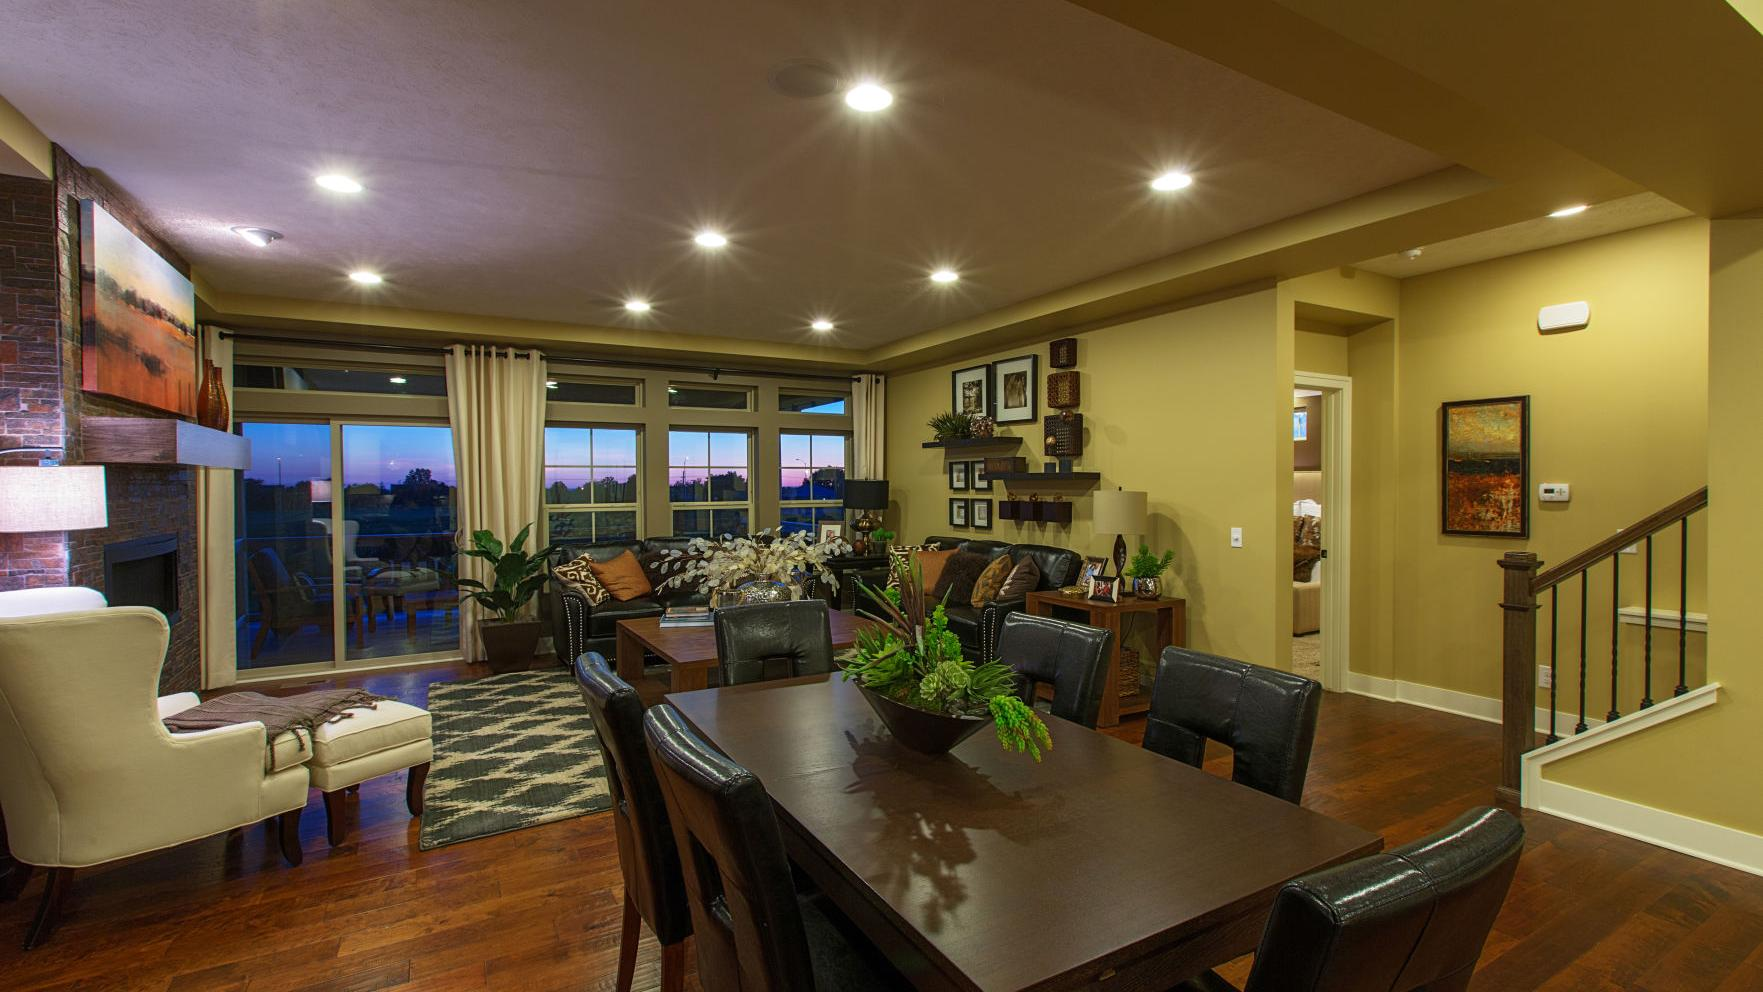 Omaha Ranks High On Big Houses List 41 Of Owner Occupied Homes Have 8 Or More Rooms Money Omaha Com